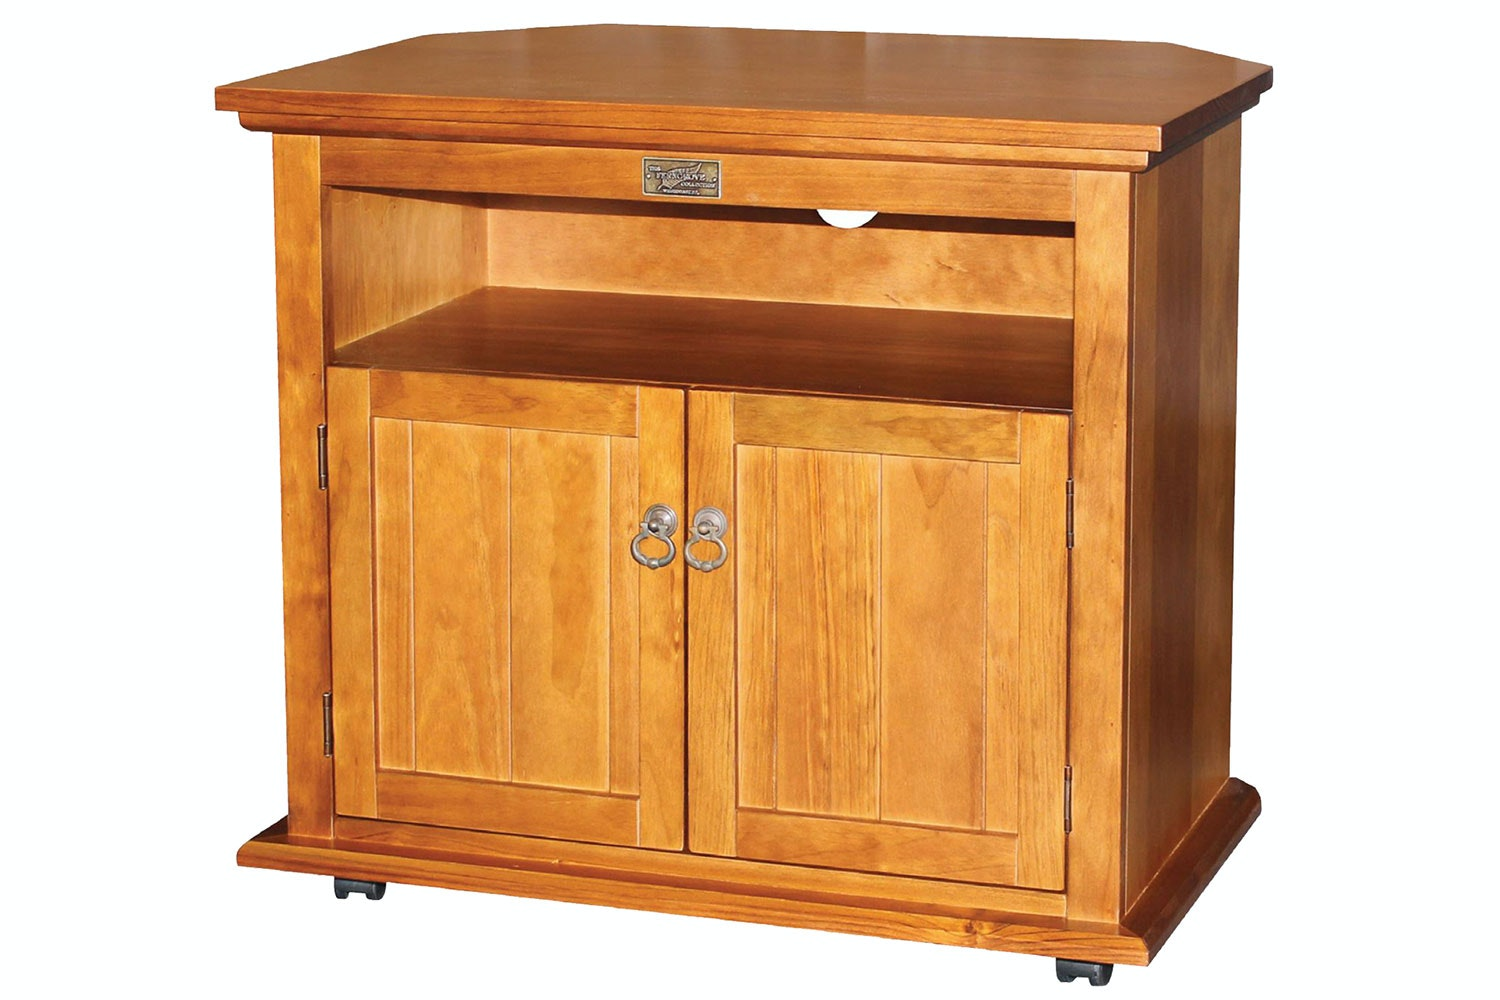 Ferngrove 2 Door Corner TV Trolley by Coastwood Furniture